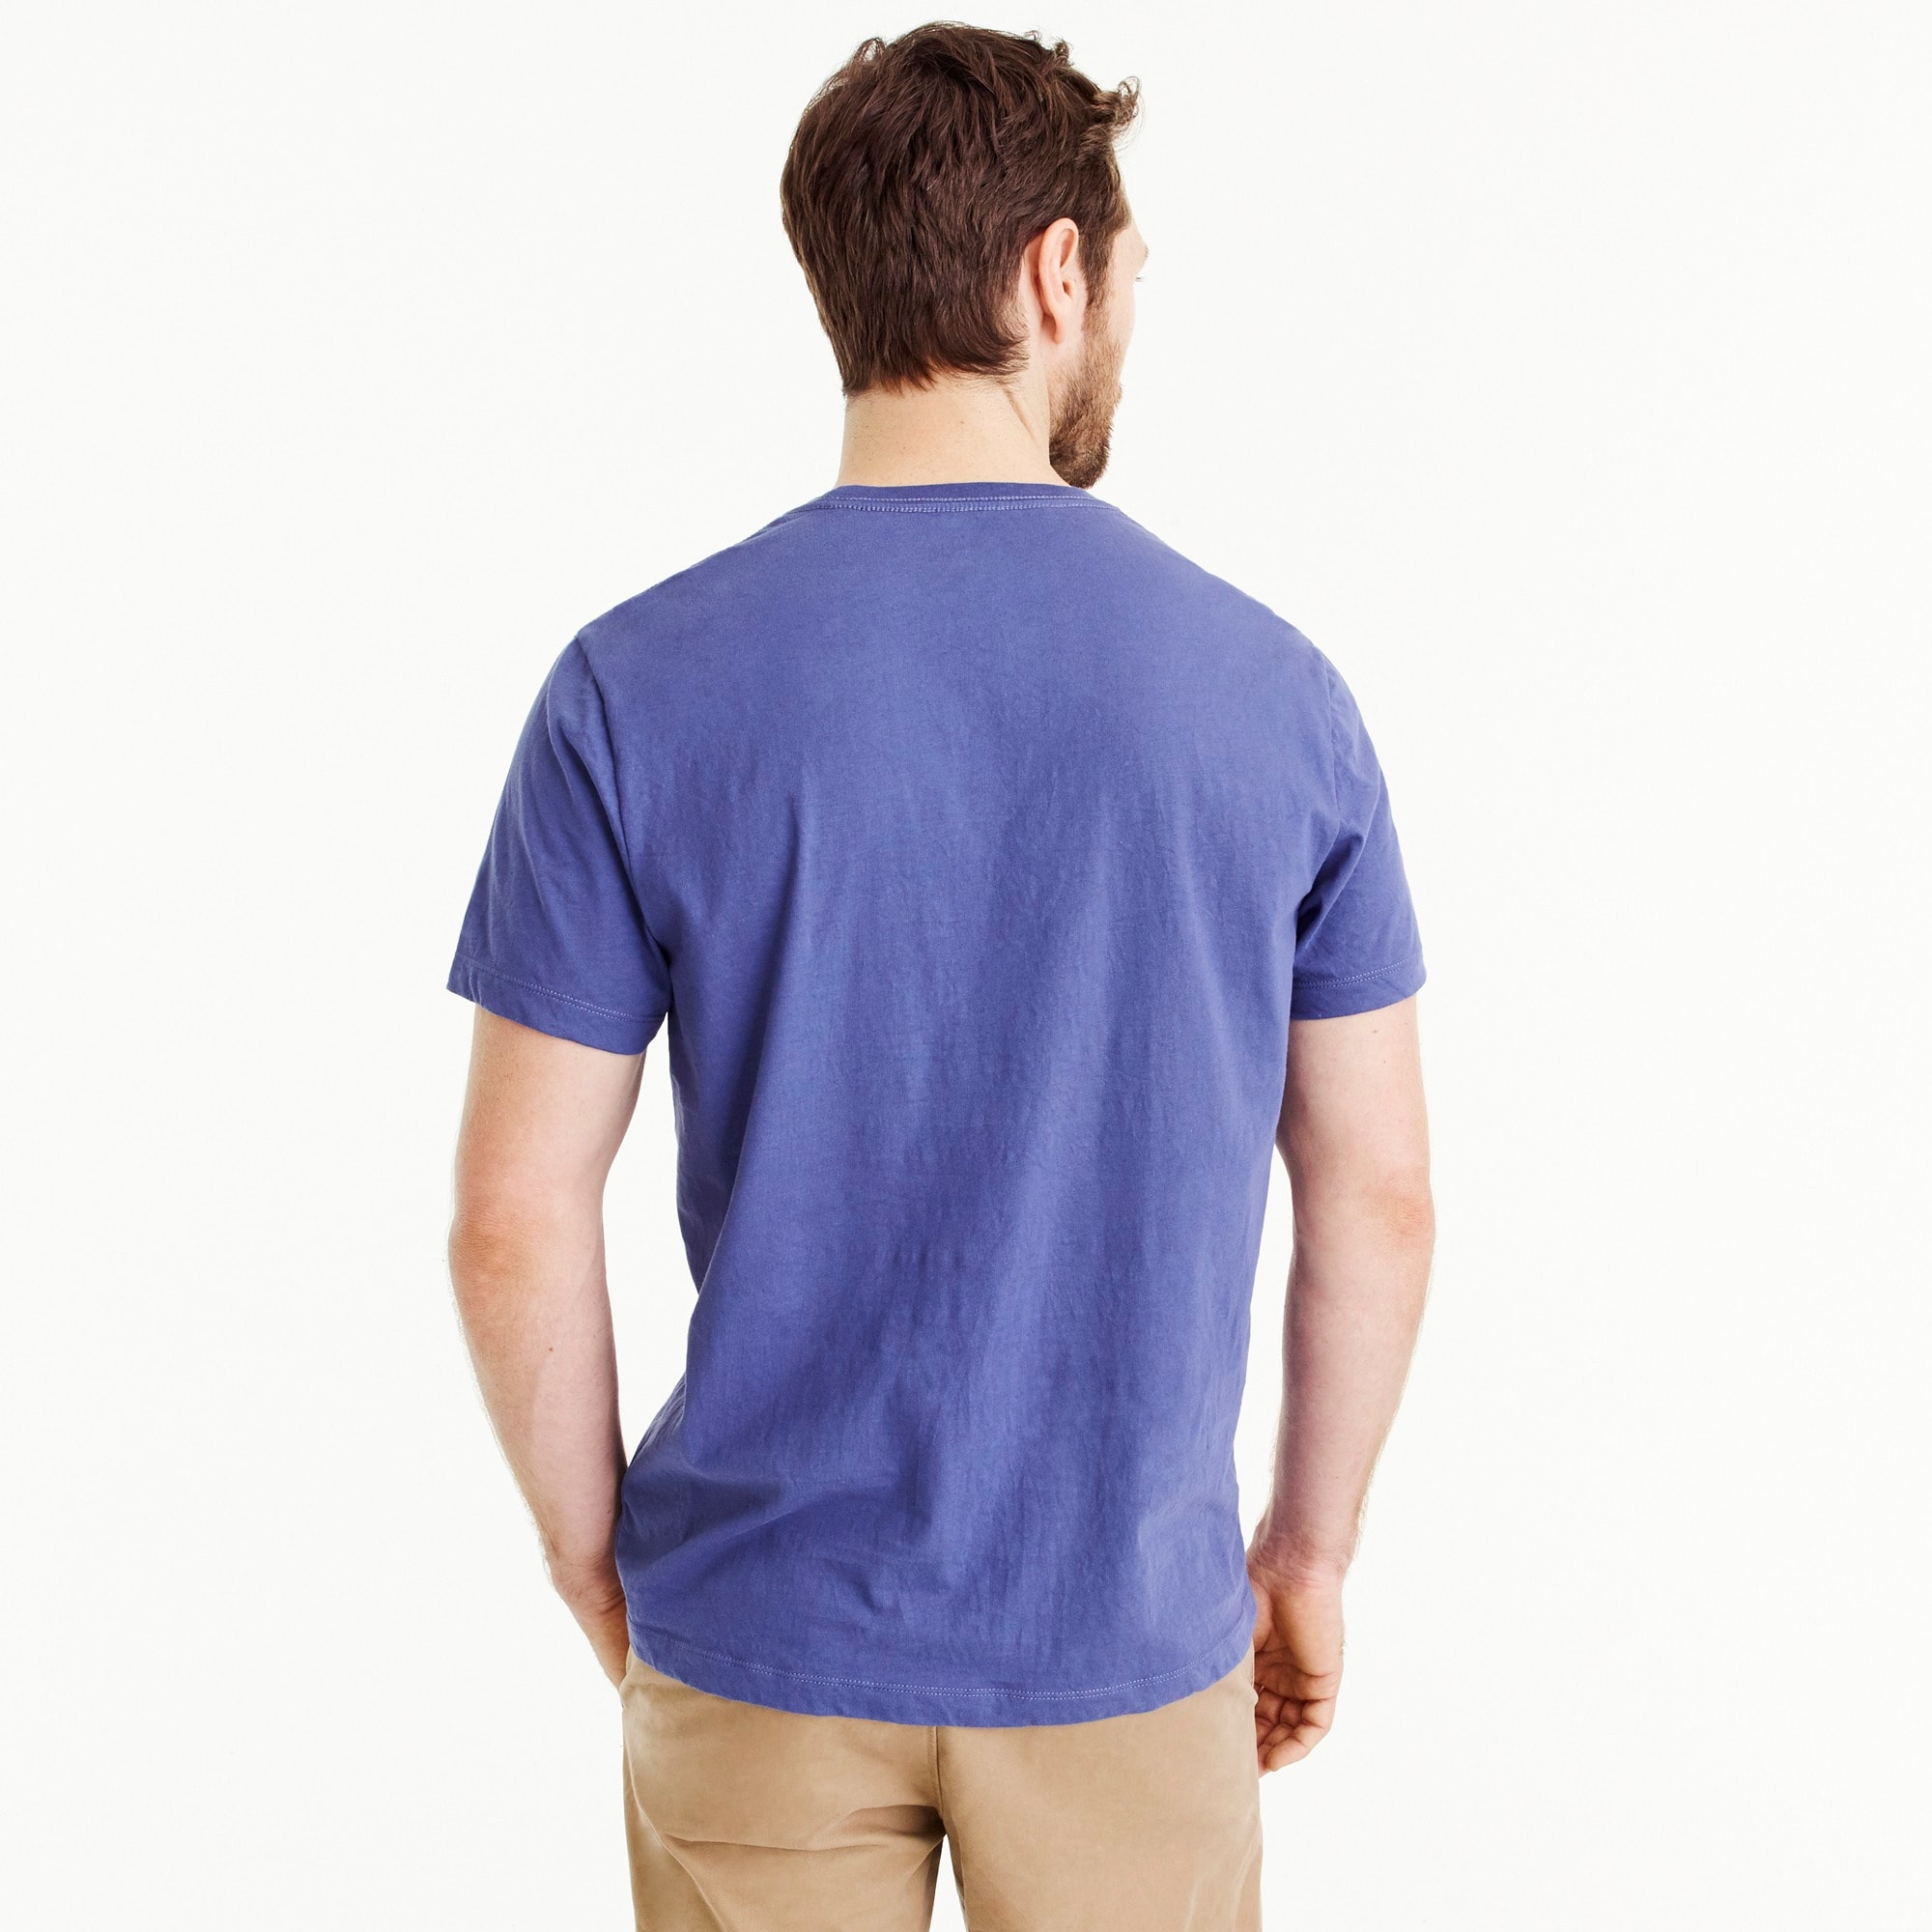 Image 3 for Tall J.Crew Mercantile Broken-in T-shirt in sail graphic